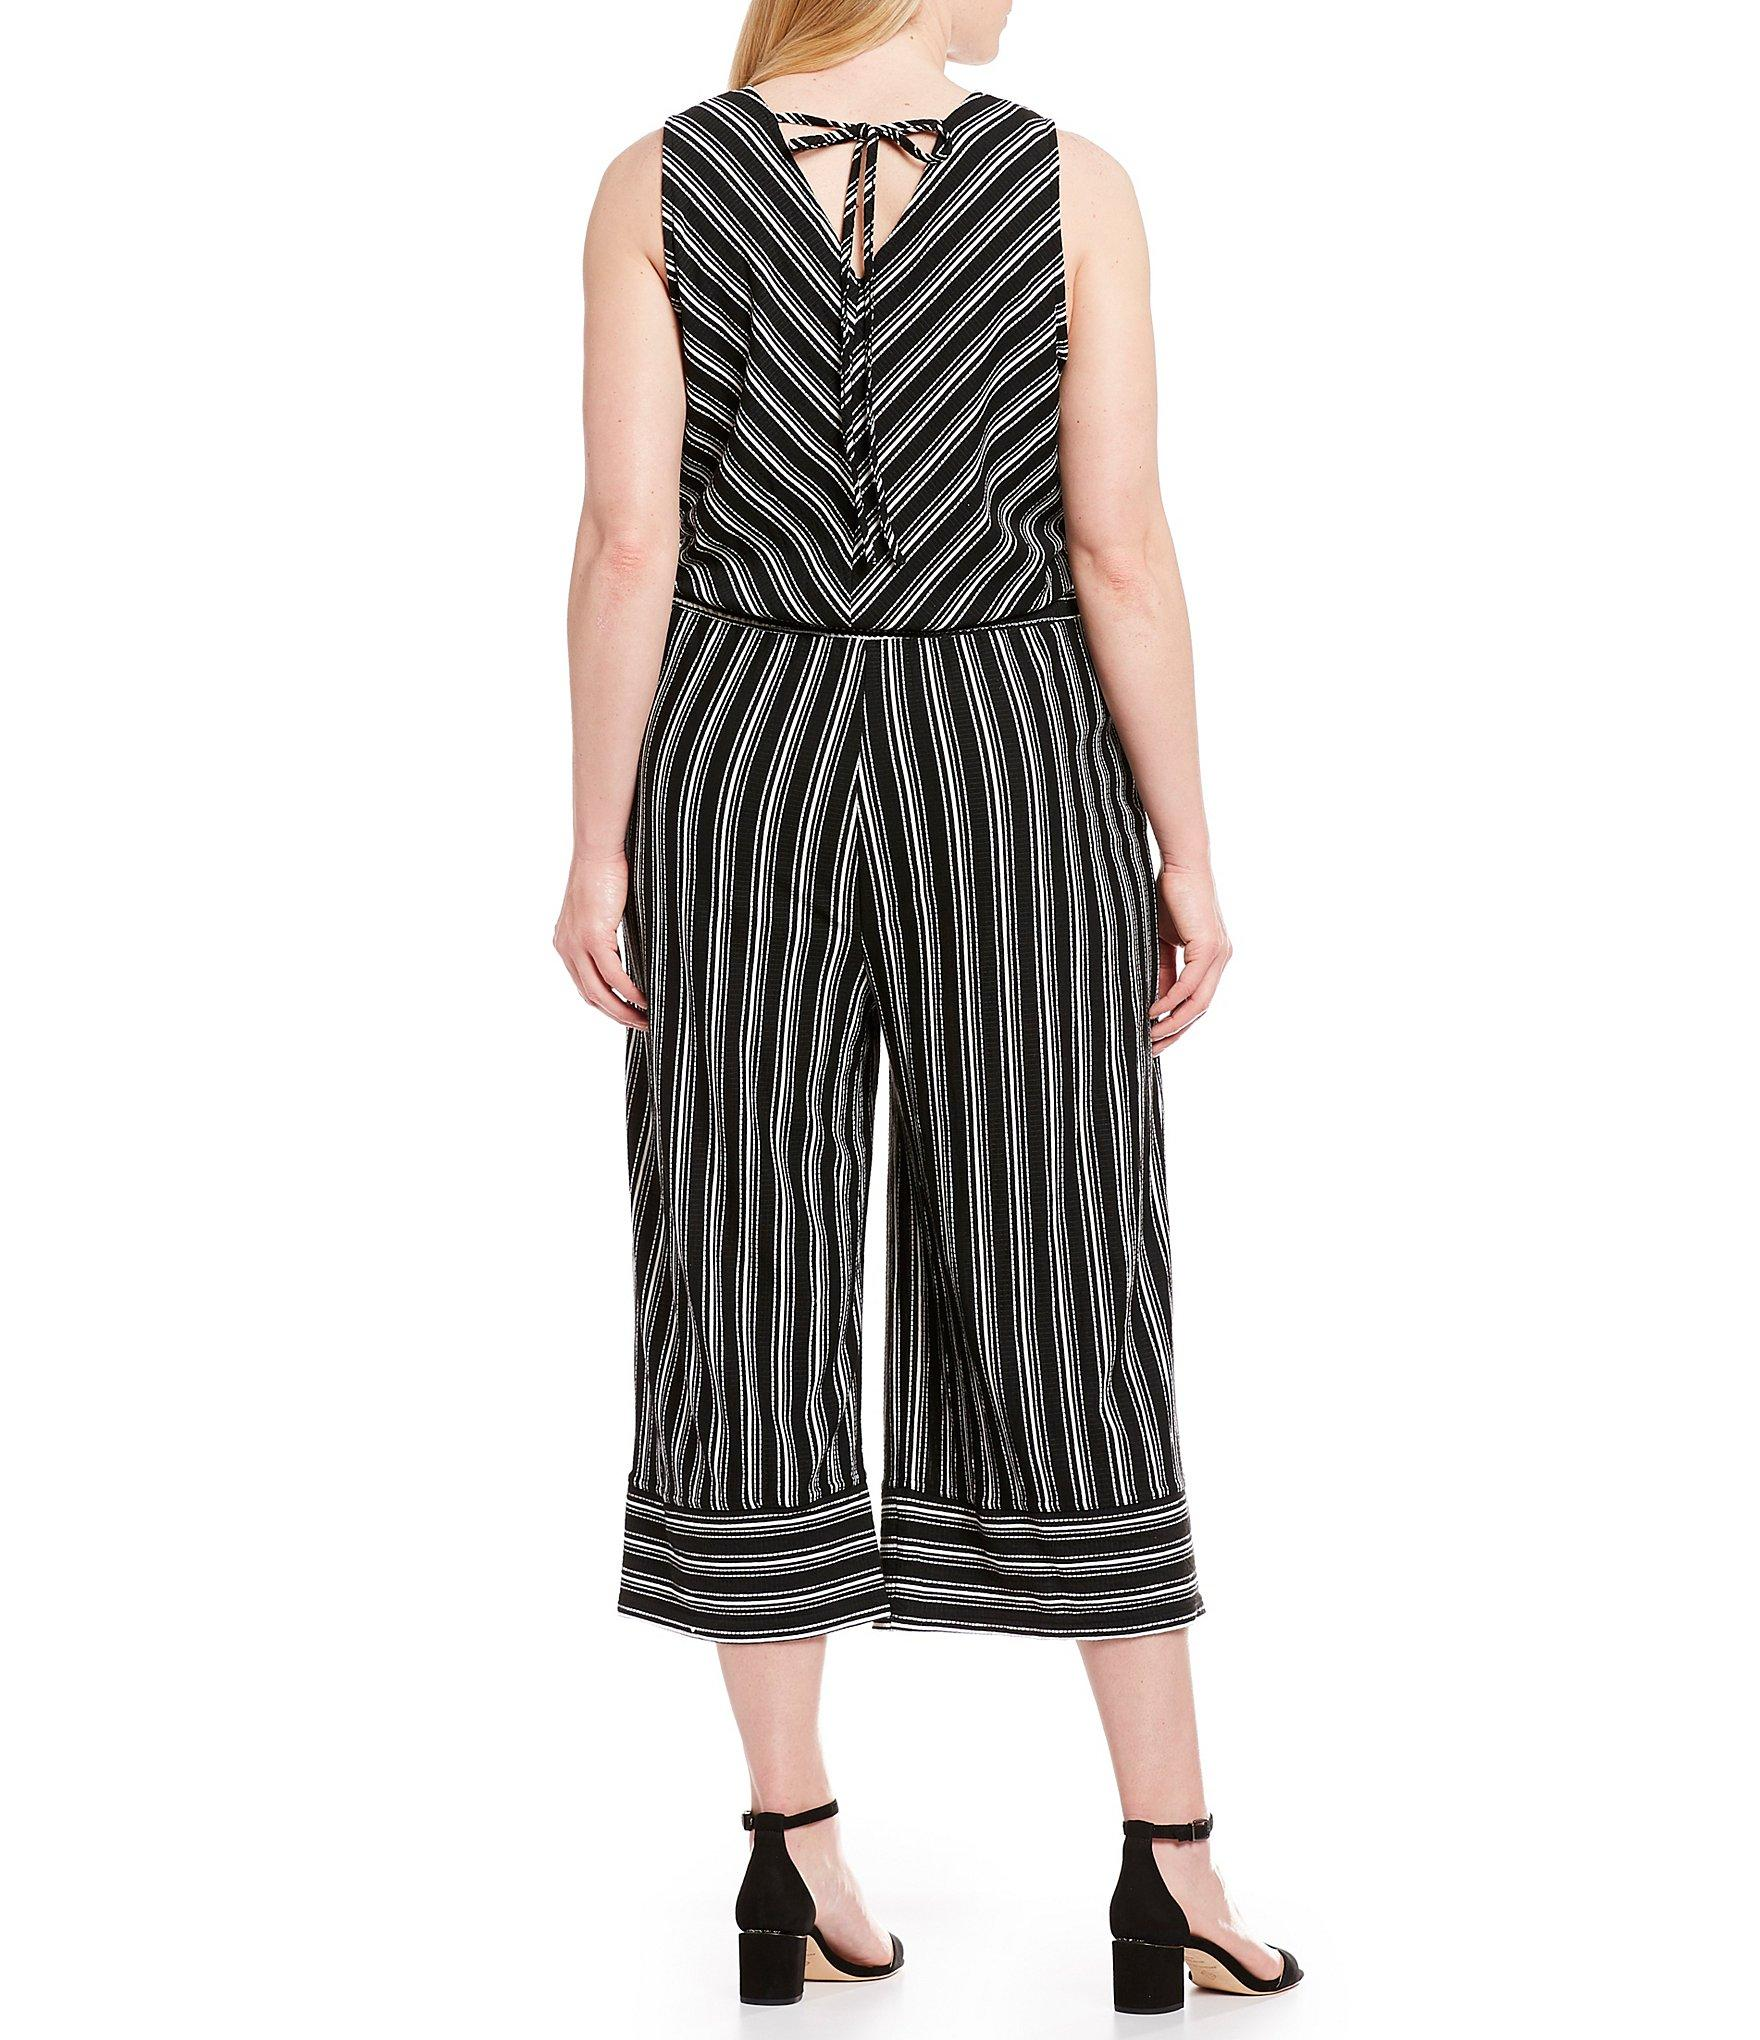 ba197d648c4 ... Striped Surplice V-neck Sleeveless Cropped Jumpsuit - Lyst. View  fullscreen